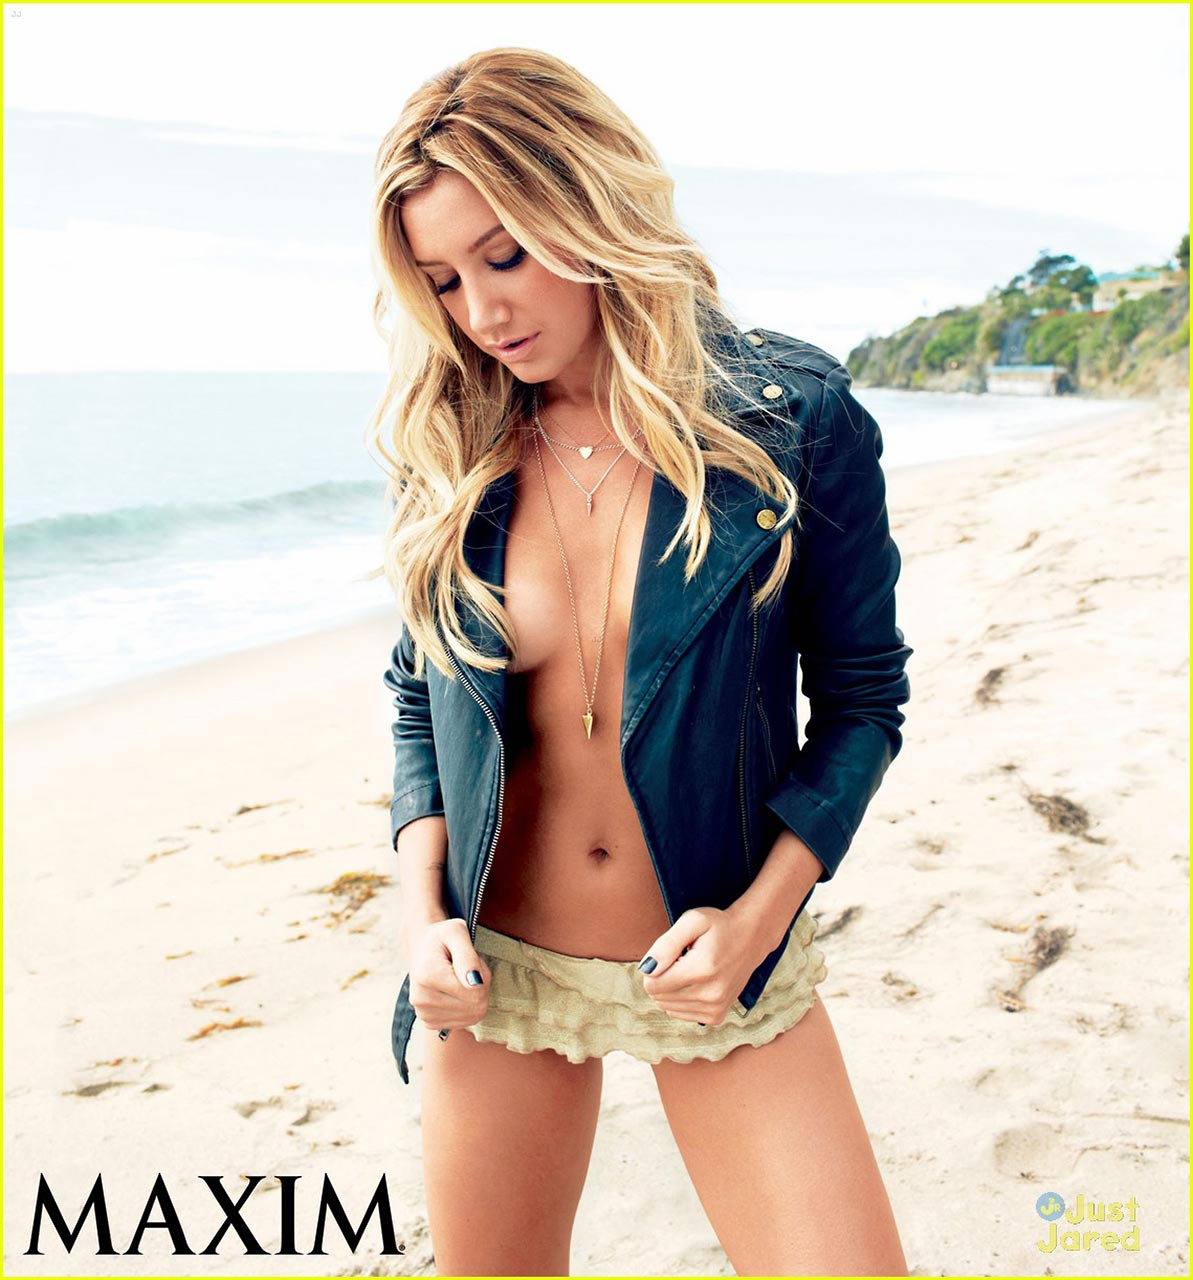 Miley cyrus ashley tisdale naked